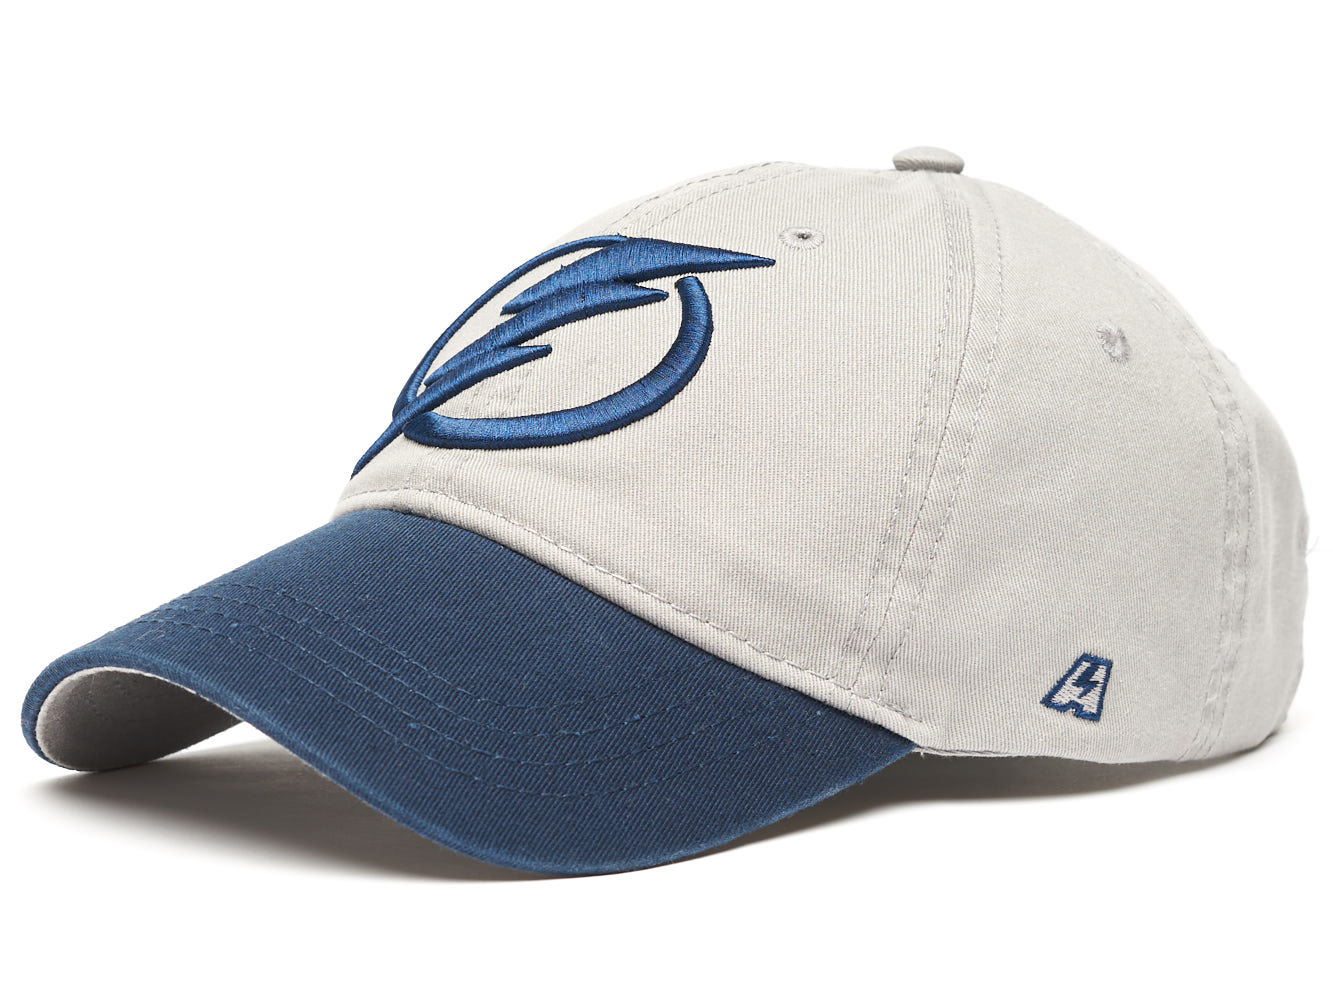 Бейсболка NHL Tampa Bay Lightning серая